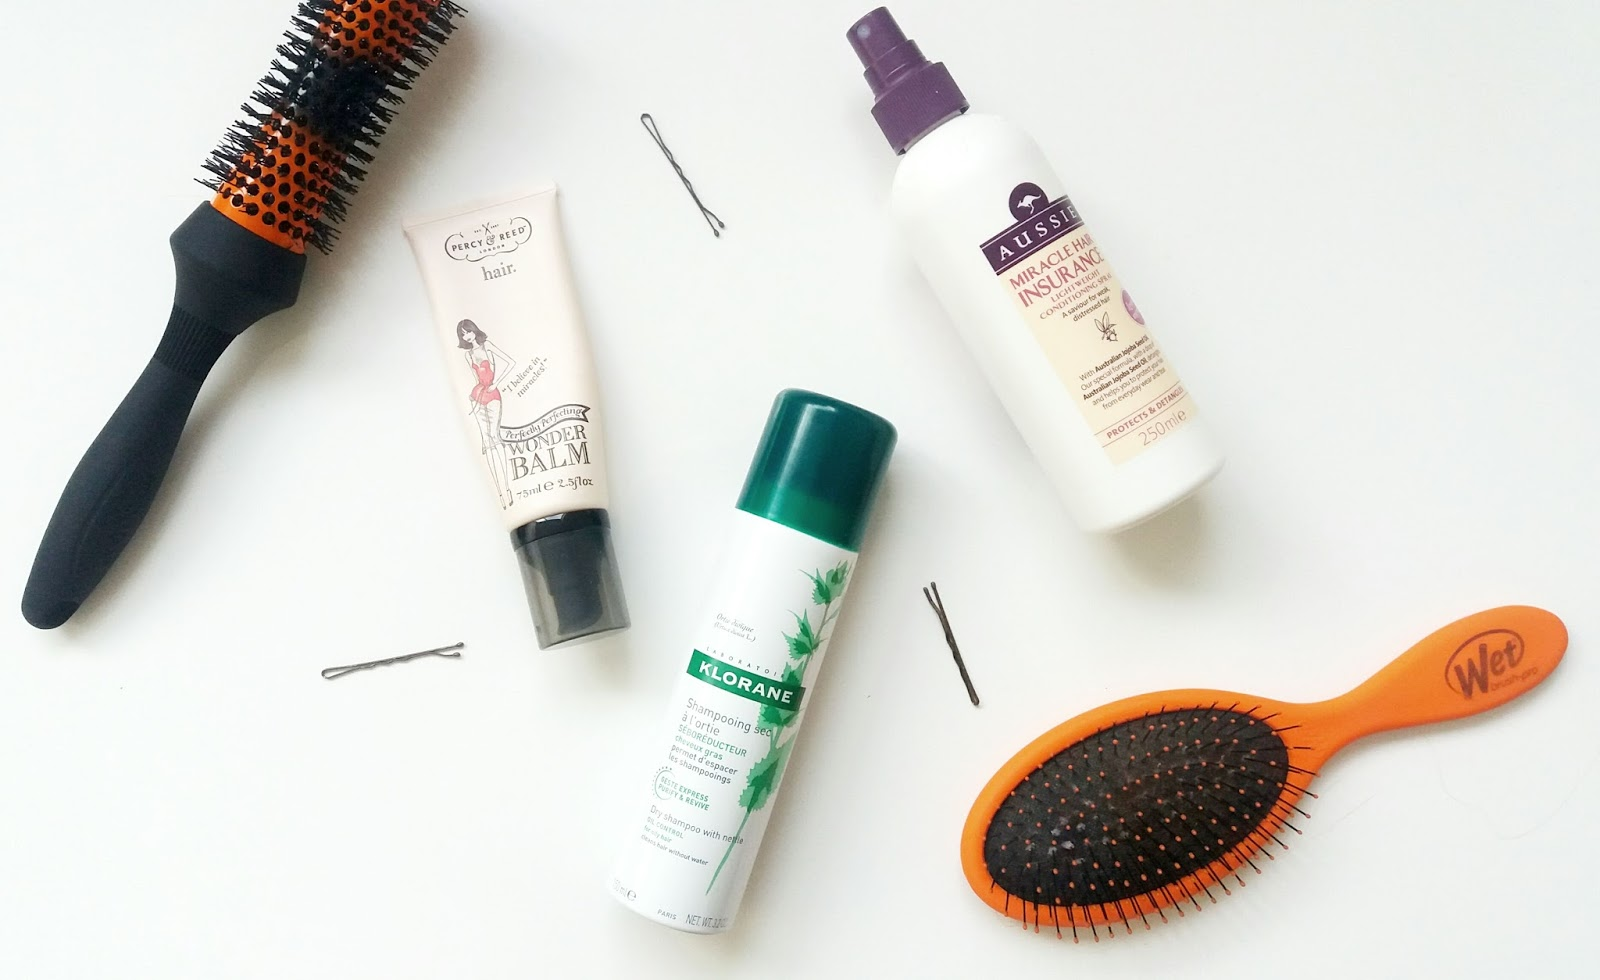 Percy and Reed Wonder Balm, Klorane Dry Shampoo, Aussie Miracle Hair Insurance